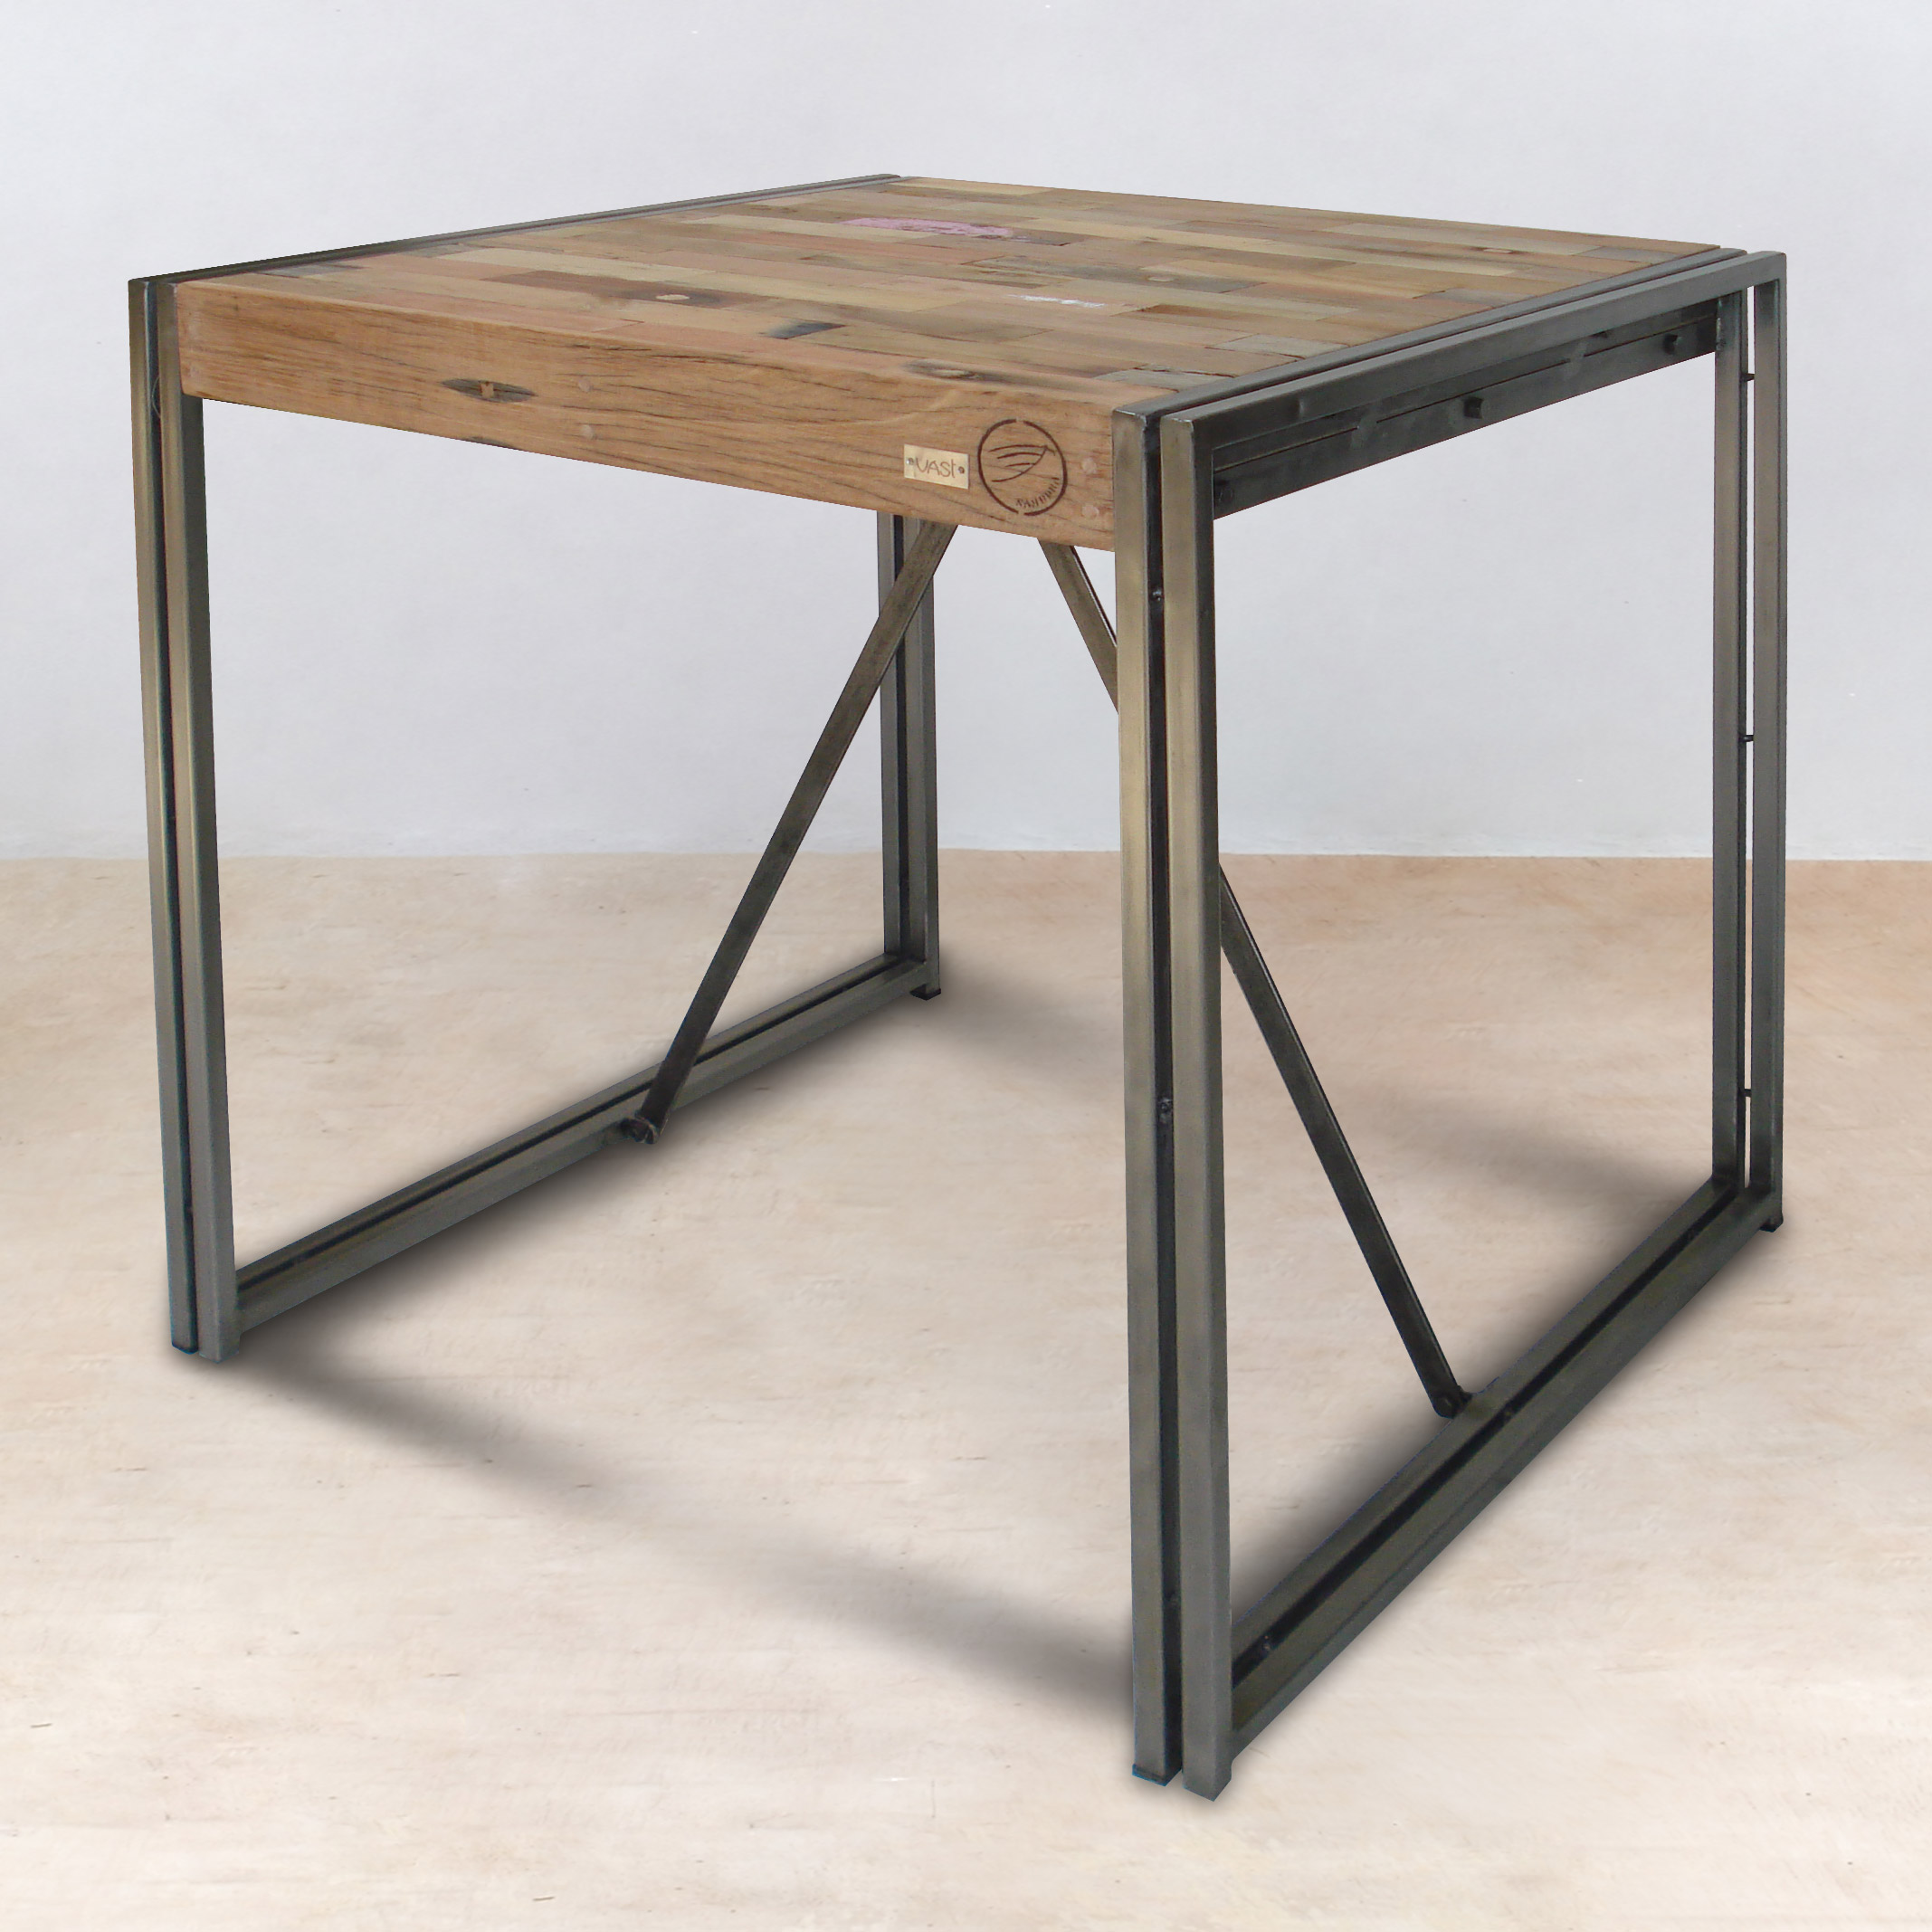 Table mange debout 100cm en bois recycl s industryal - Table a manger carree bois ...